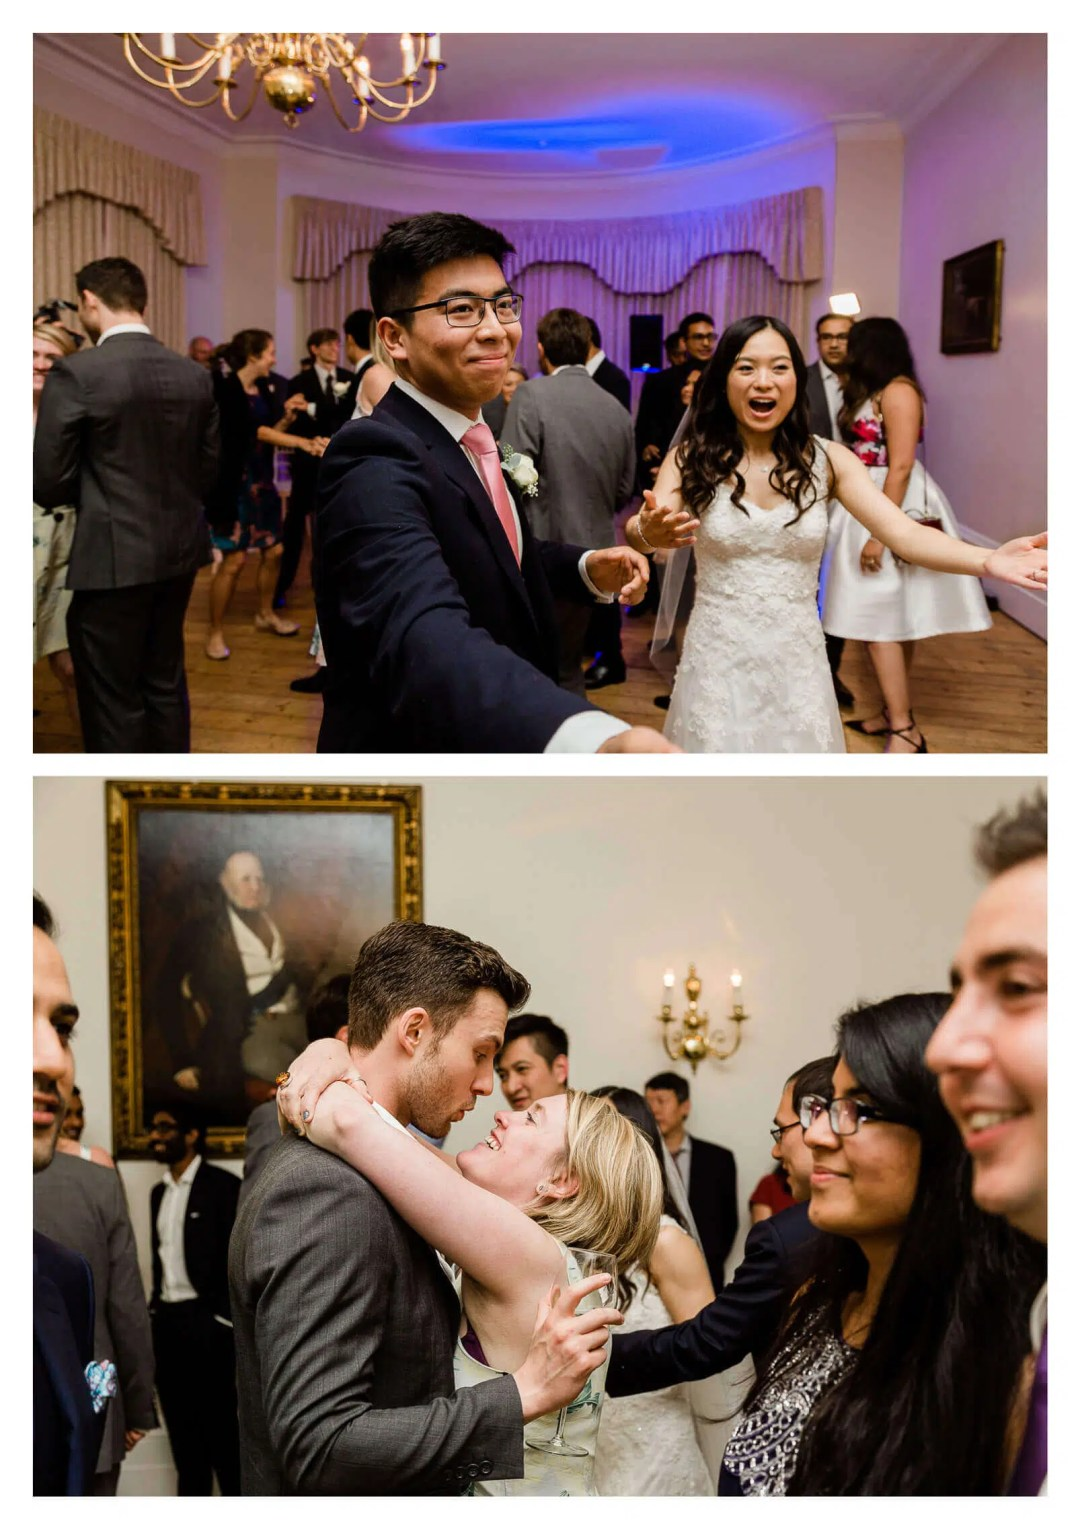 Cambridge Cottage wedding disco | Kew Gardens wedding photographer